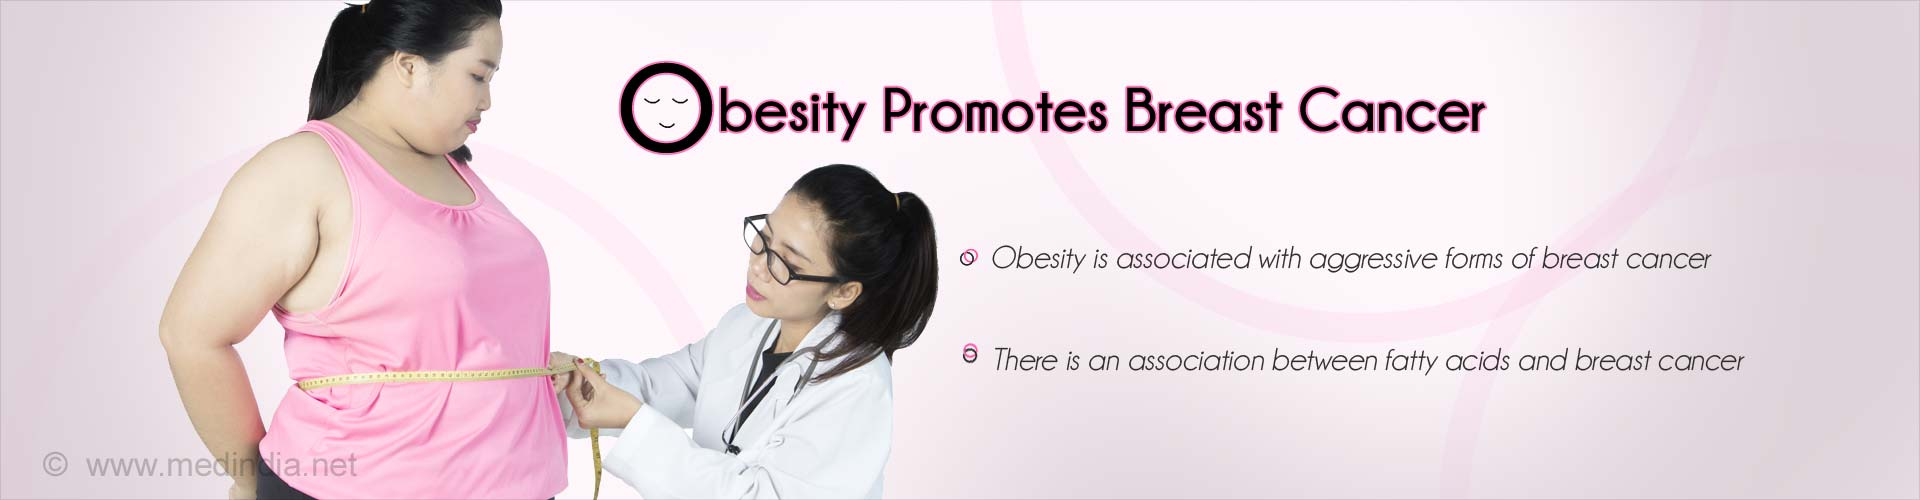 Obesity promotes breast cancer - Obesity is associated with aggressive forms of breast cancer - There is an association between fatty acids and breast cancer